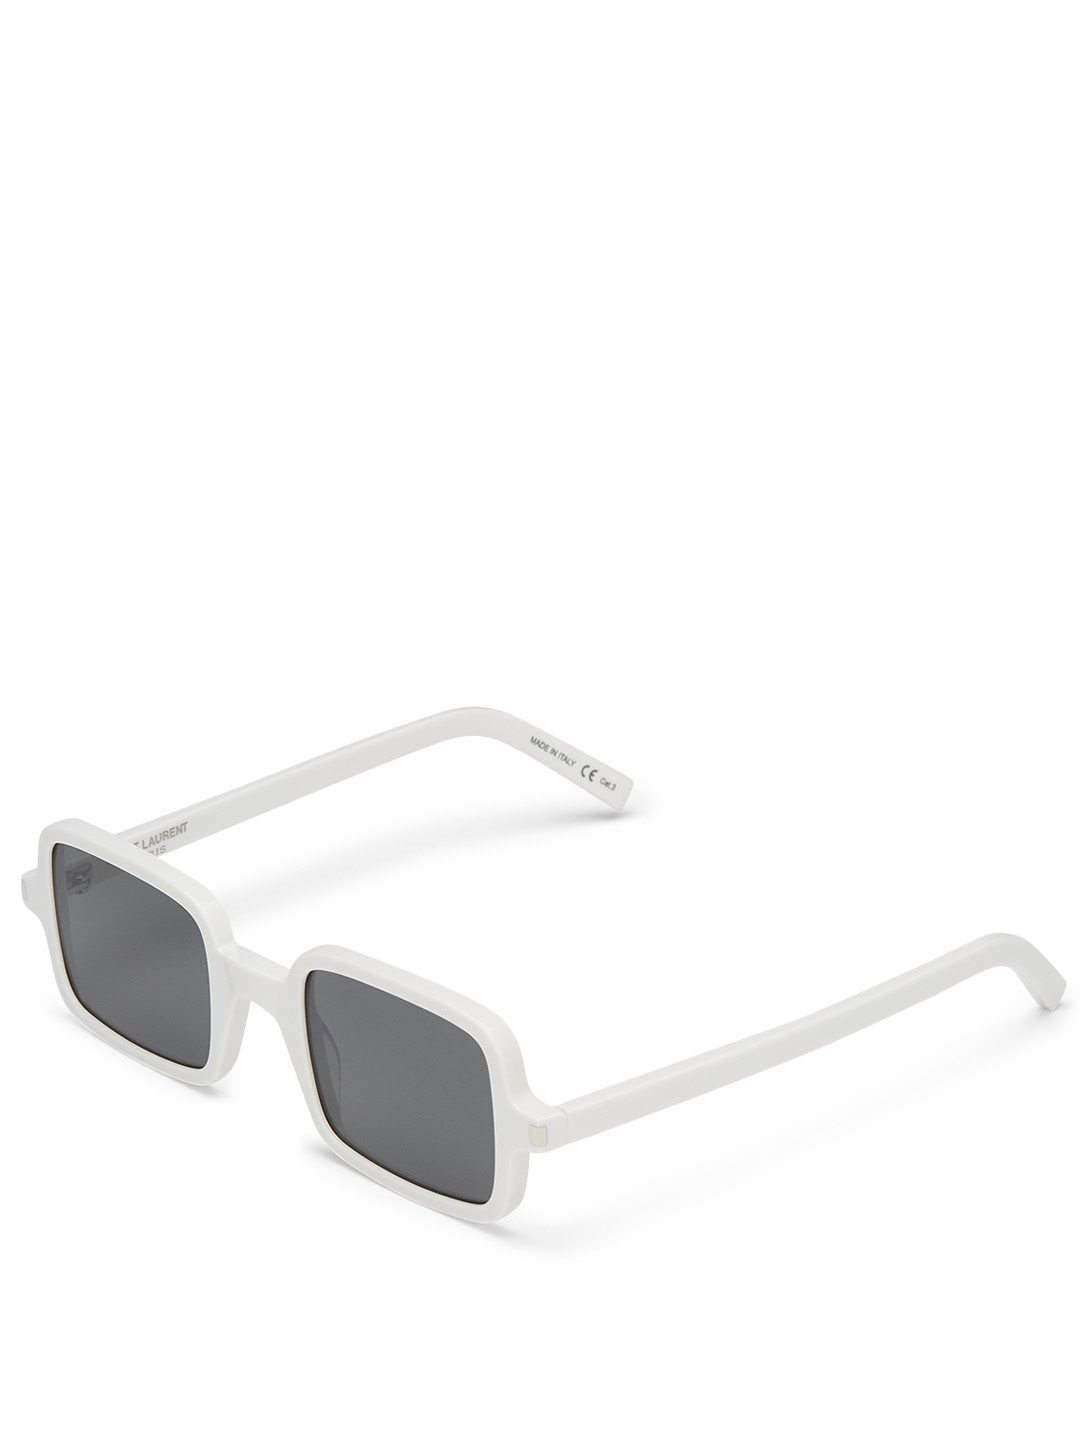 SAINT LAURENT SL 332 Square Sunglasses Men's White